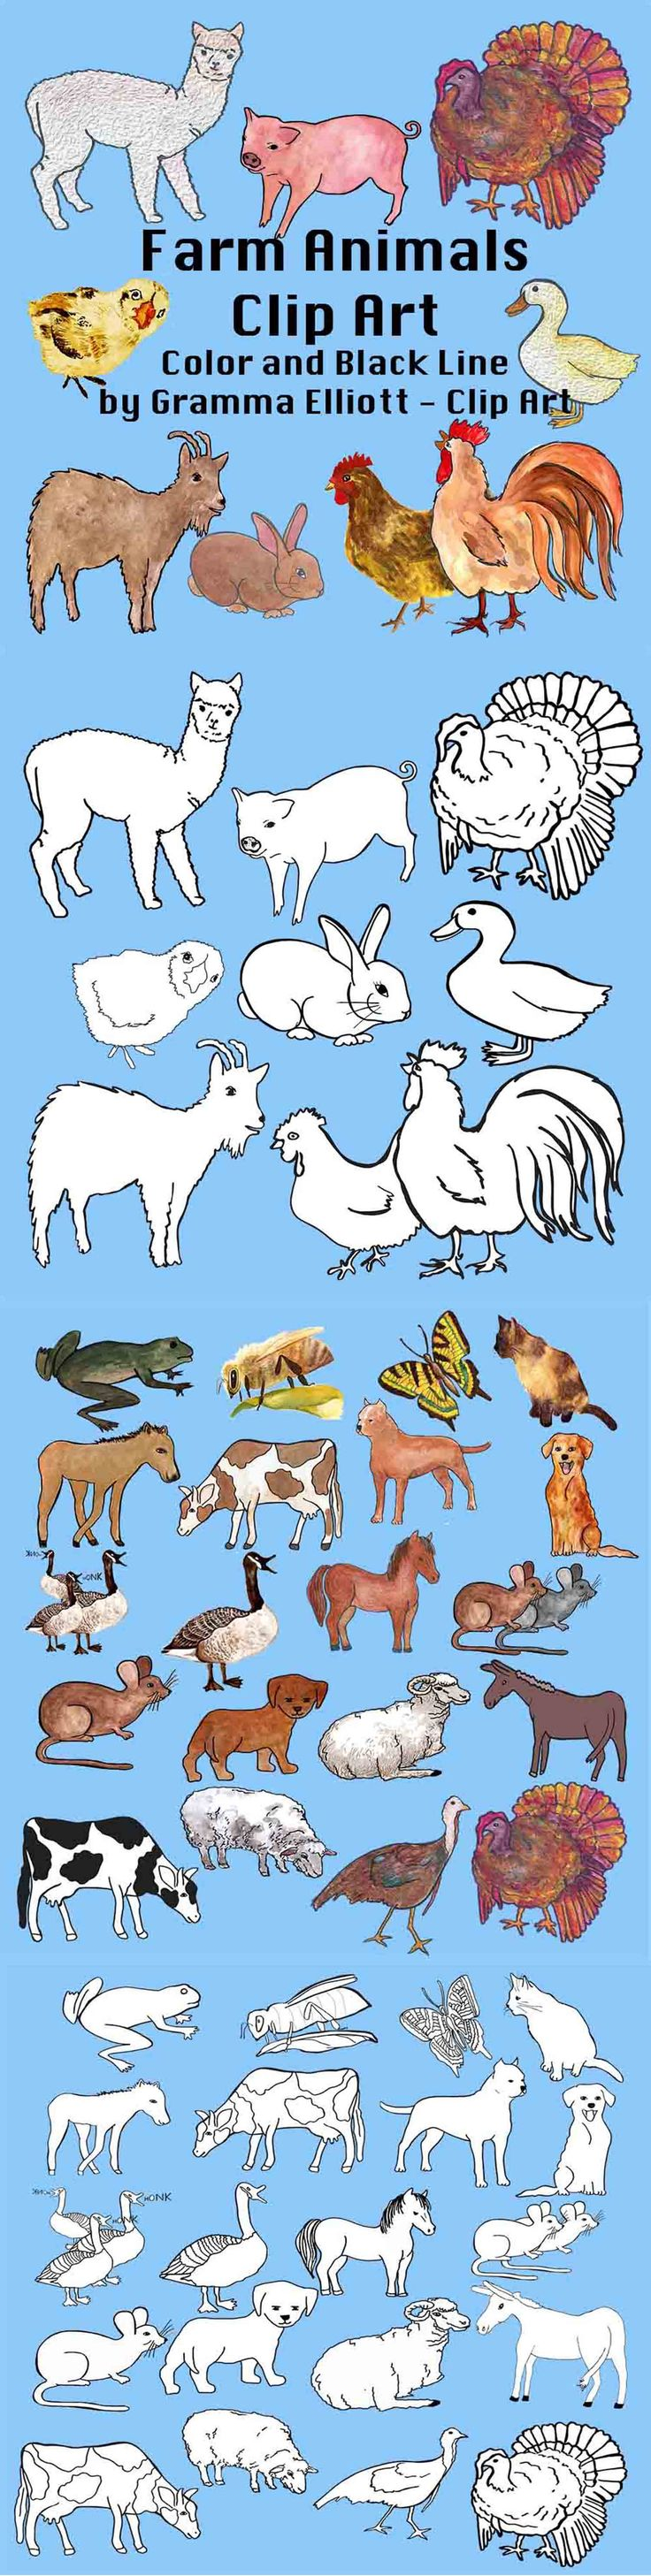 6 1 Farm Animals Clips includes a black line and color clip art image for each item: Alpaca, bee, butterfly, Cat, Chicken, Colt, Cow, Dog1, Dog2, Duck, geese, Goat, Goose, Hen, Horse, mice, Mouse, Mule, Pig, Puppy, Rabbit, Ram, Rooster, Sheep, Turkey male, Turkey female.  I hope you enjoy my Clip Art. You are welcome to use my clip art for educational purposes in your home or classroom or to make products to sell to teachers and parents.